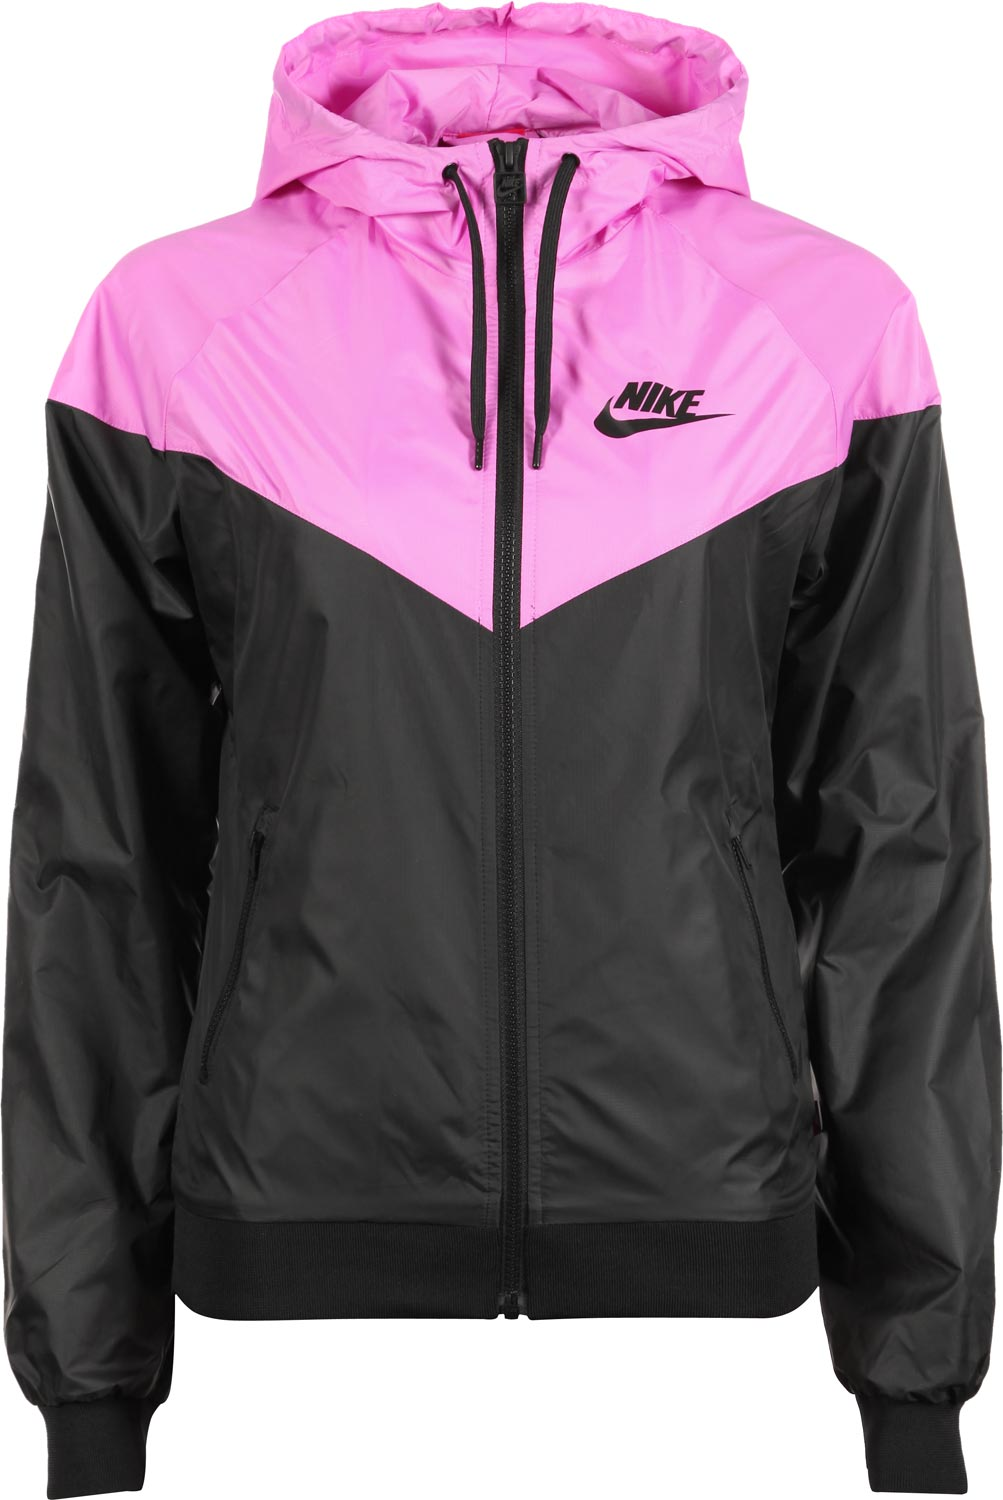 check out a78e4 f8f85 Nike Windrunner W jacket black pink